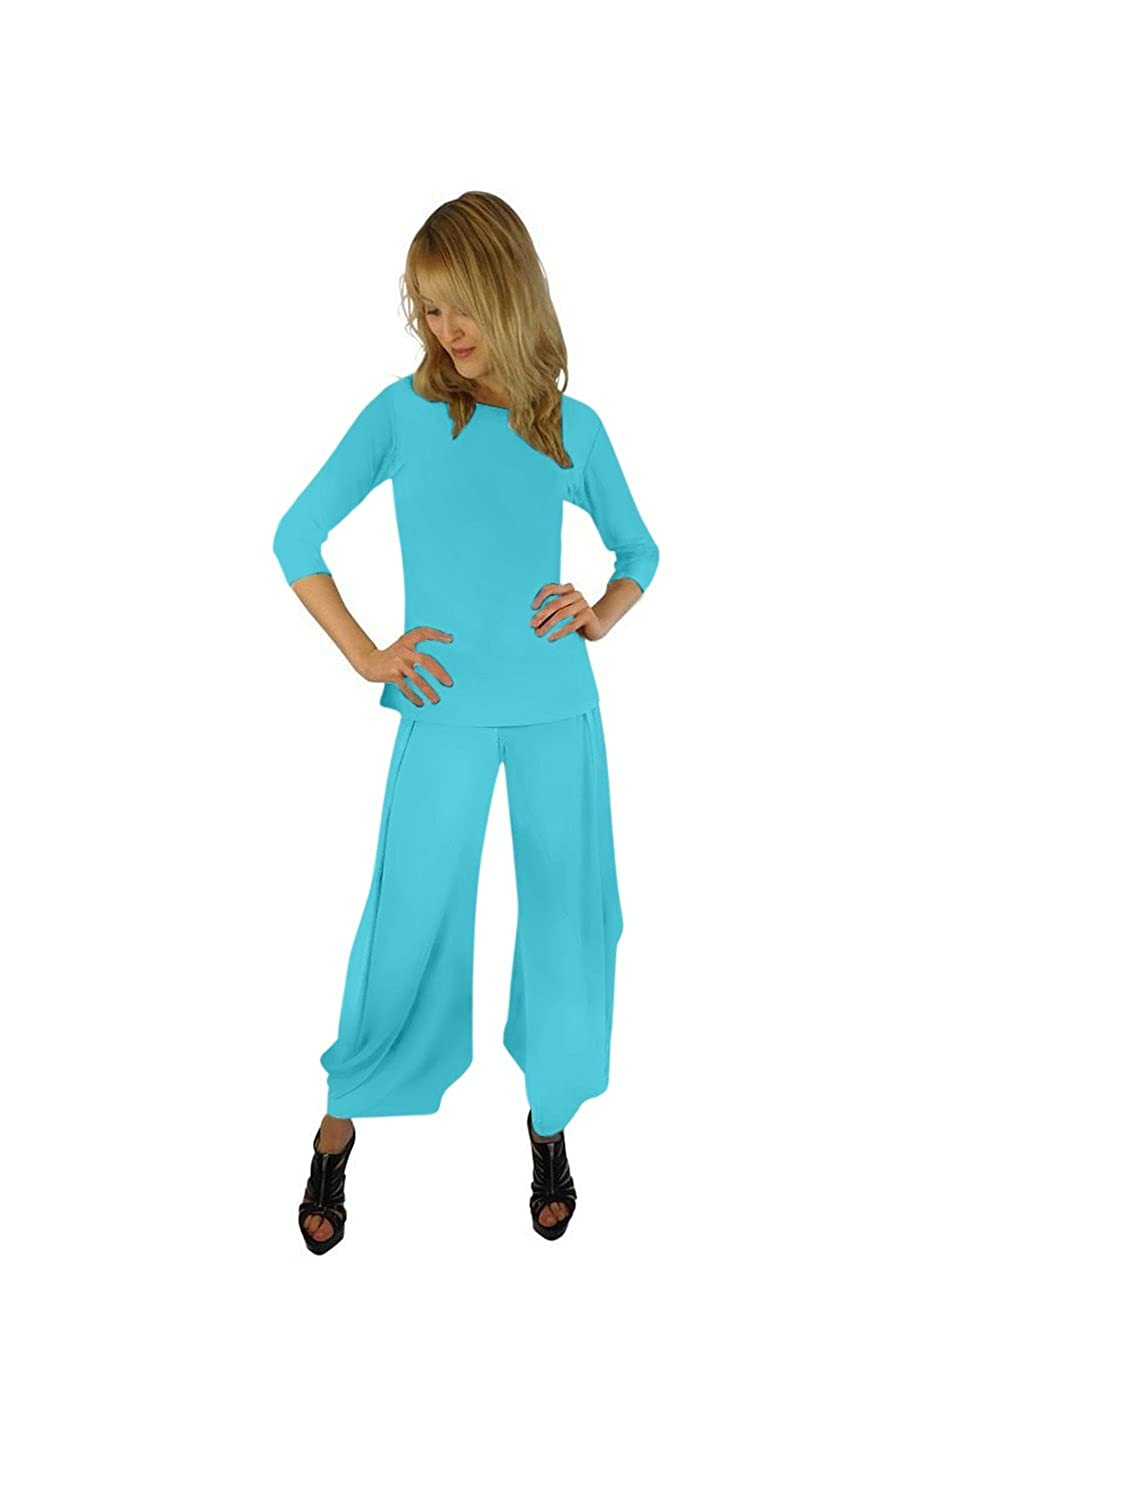 c881548ac4d high-quality Sympli Women s Dream Pant~Caribbean - s-c-r-a-p-inc.org